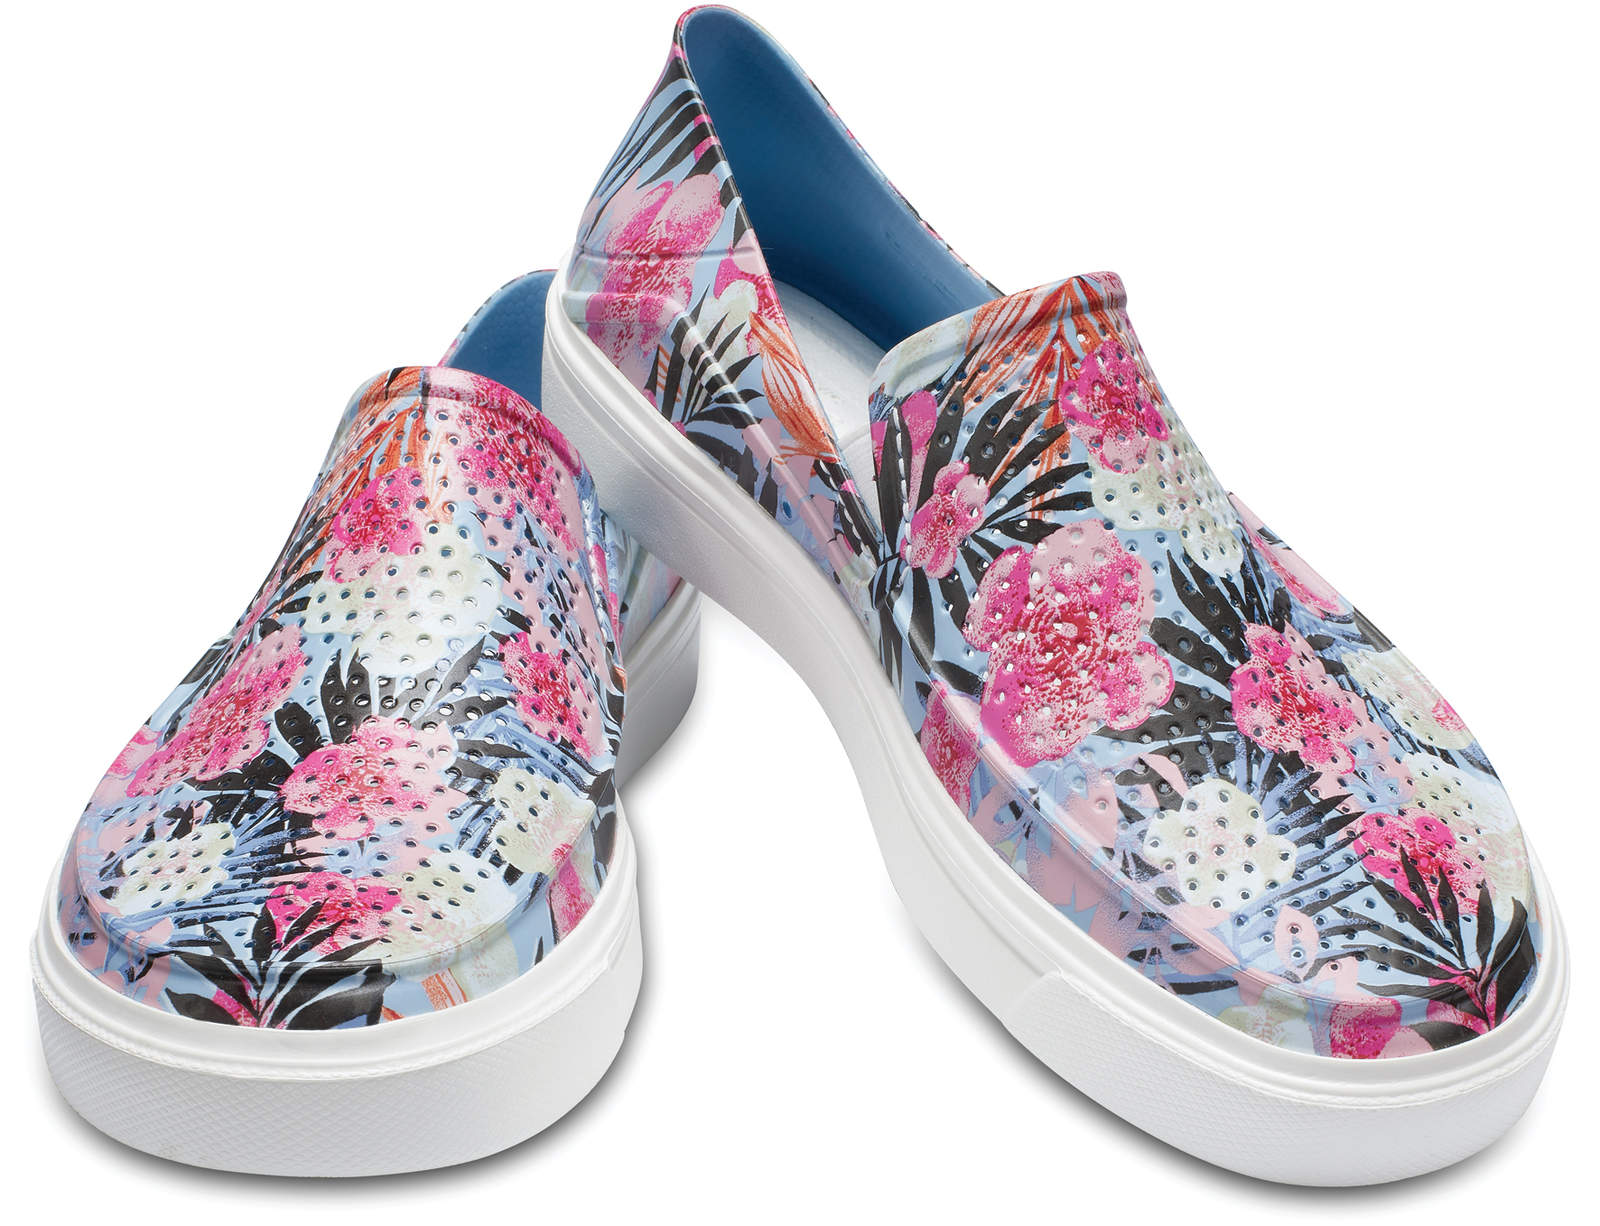 Crocs barevné slip-on boty Citilane Roca Graphic Tropical Floral